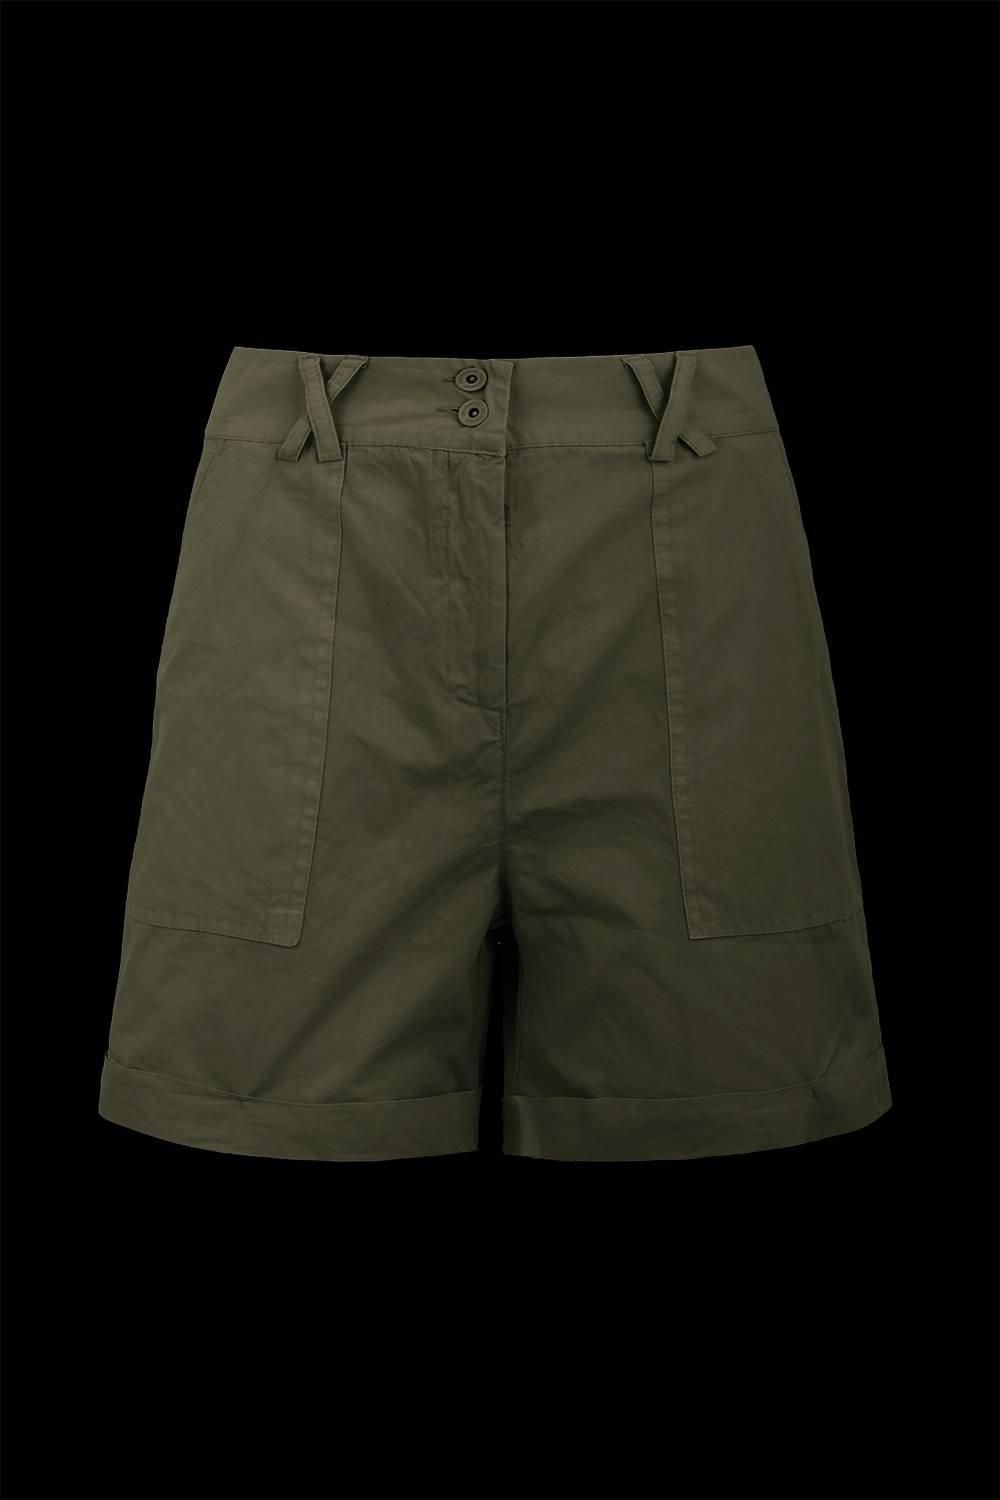 Fatigue shorts with pockets